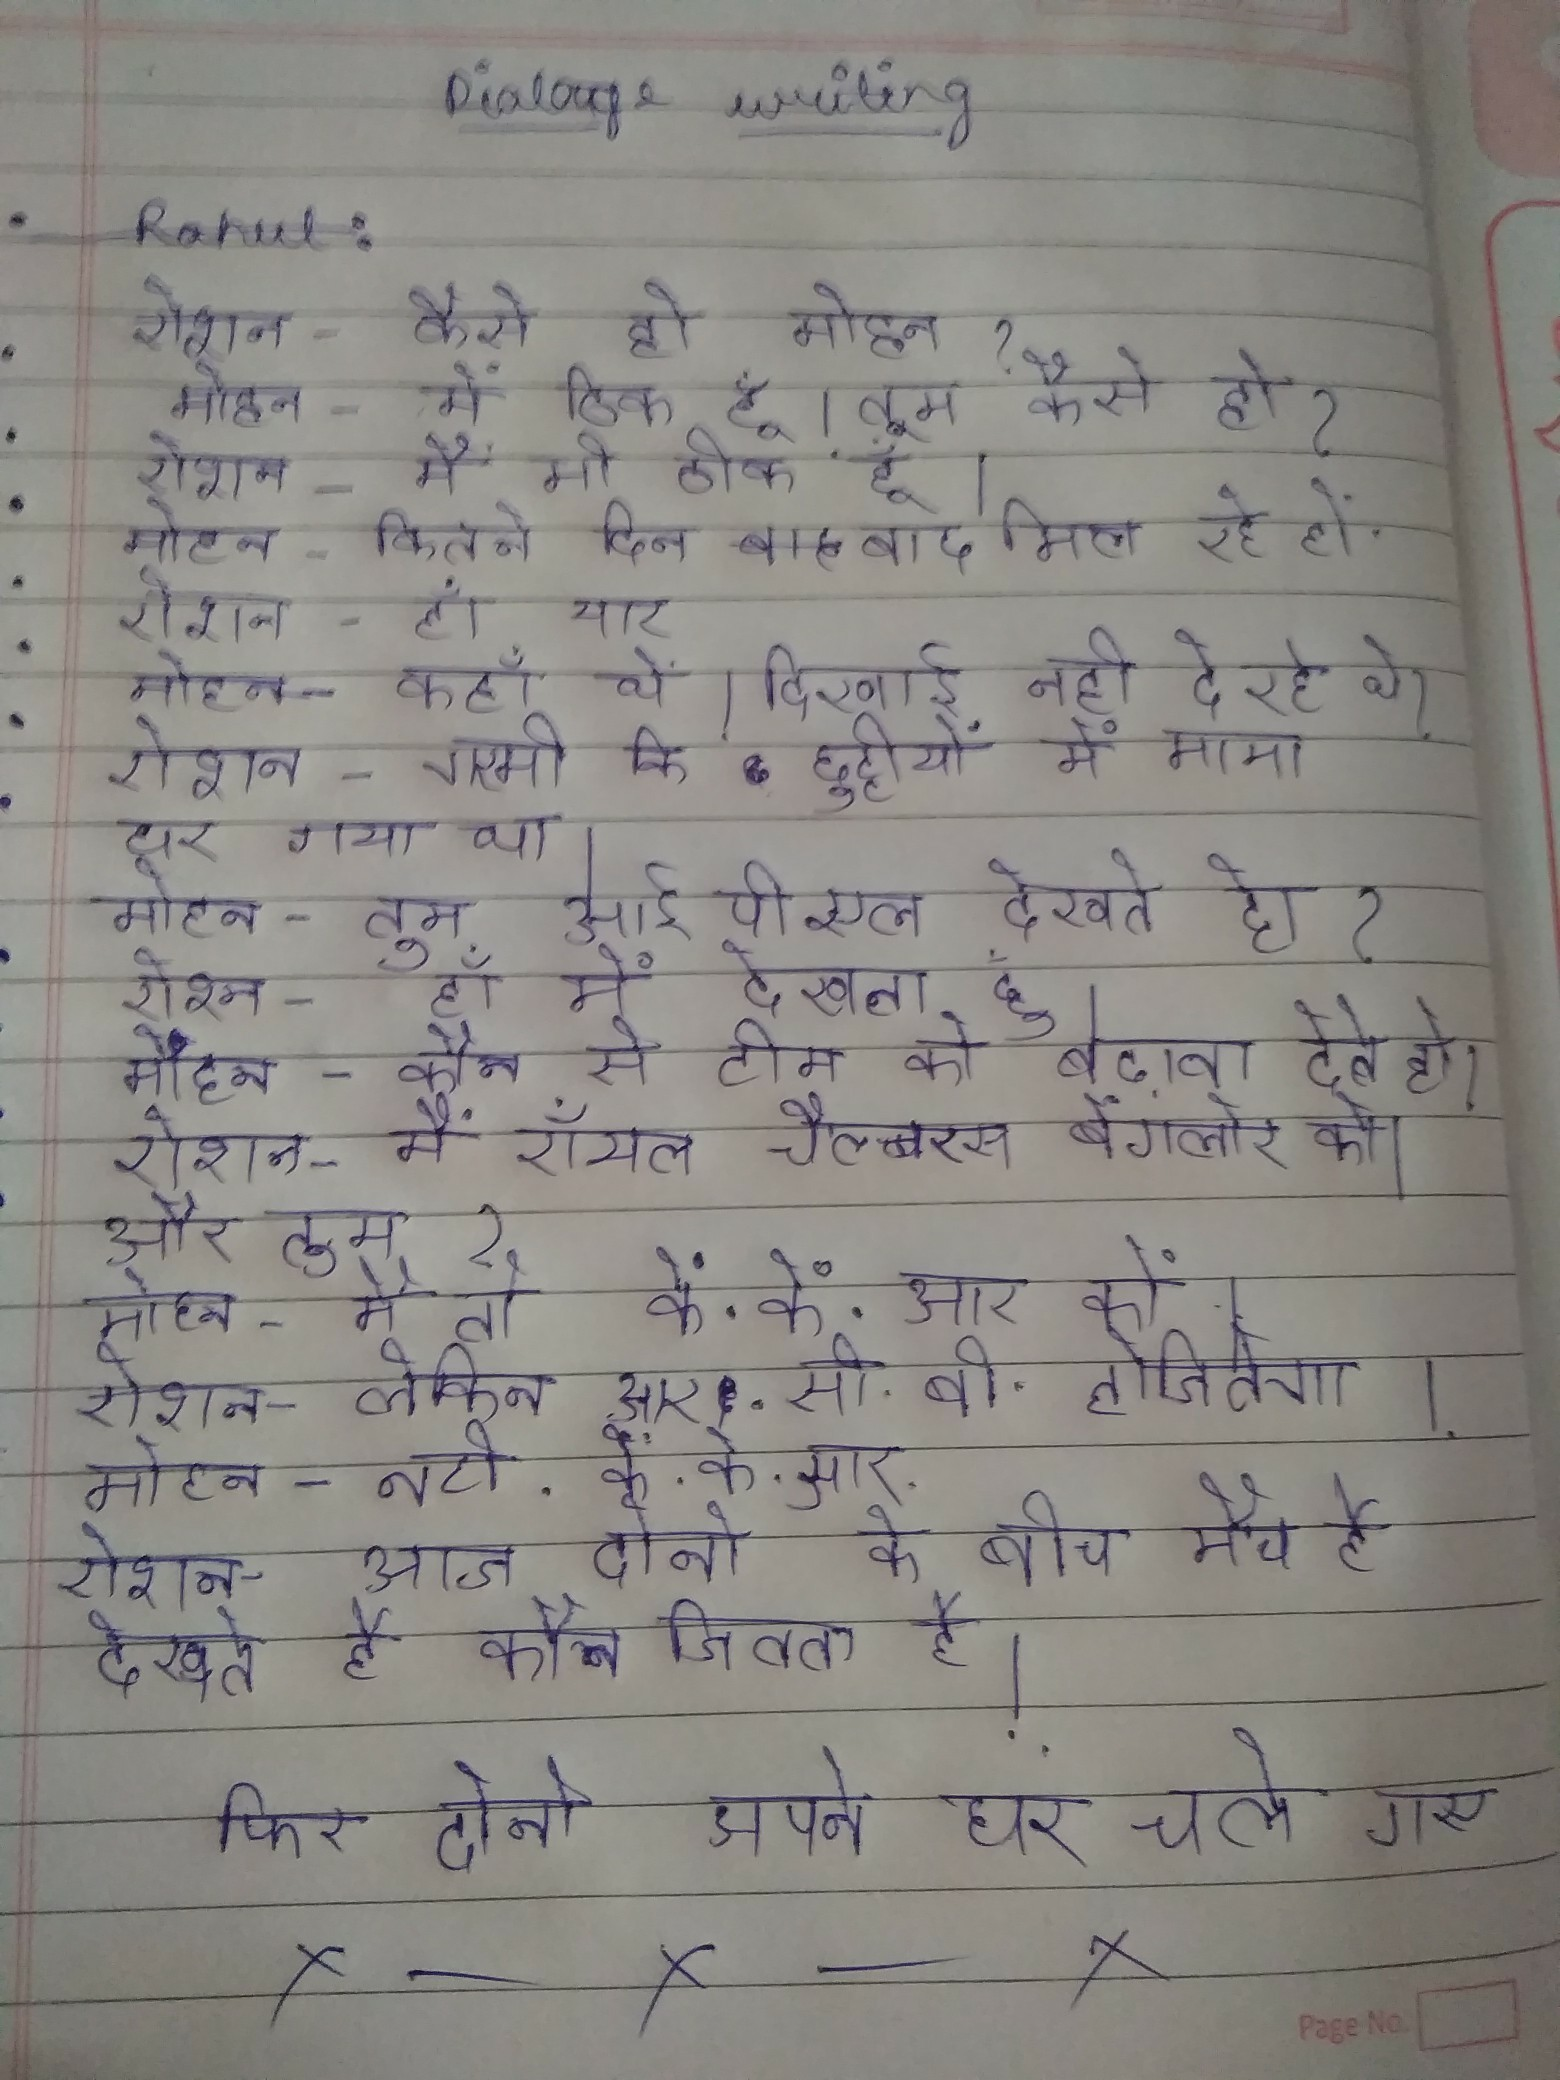 Hindi Dialogue Writing Between Two Friends Discussing